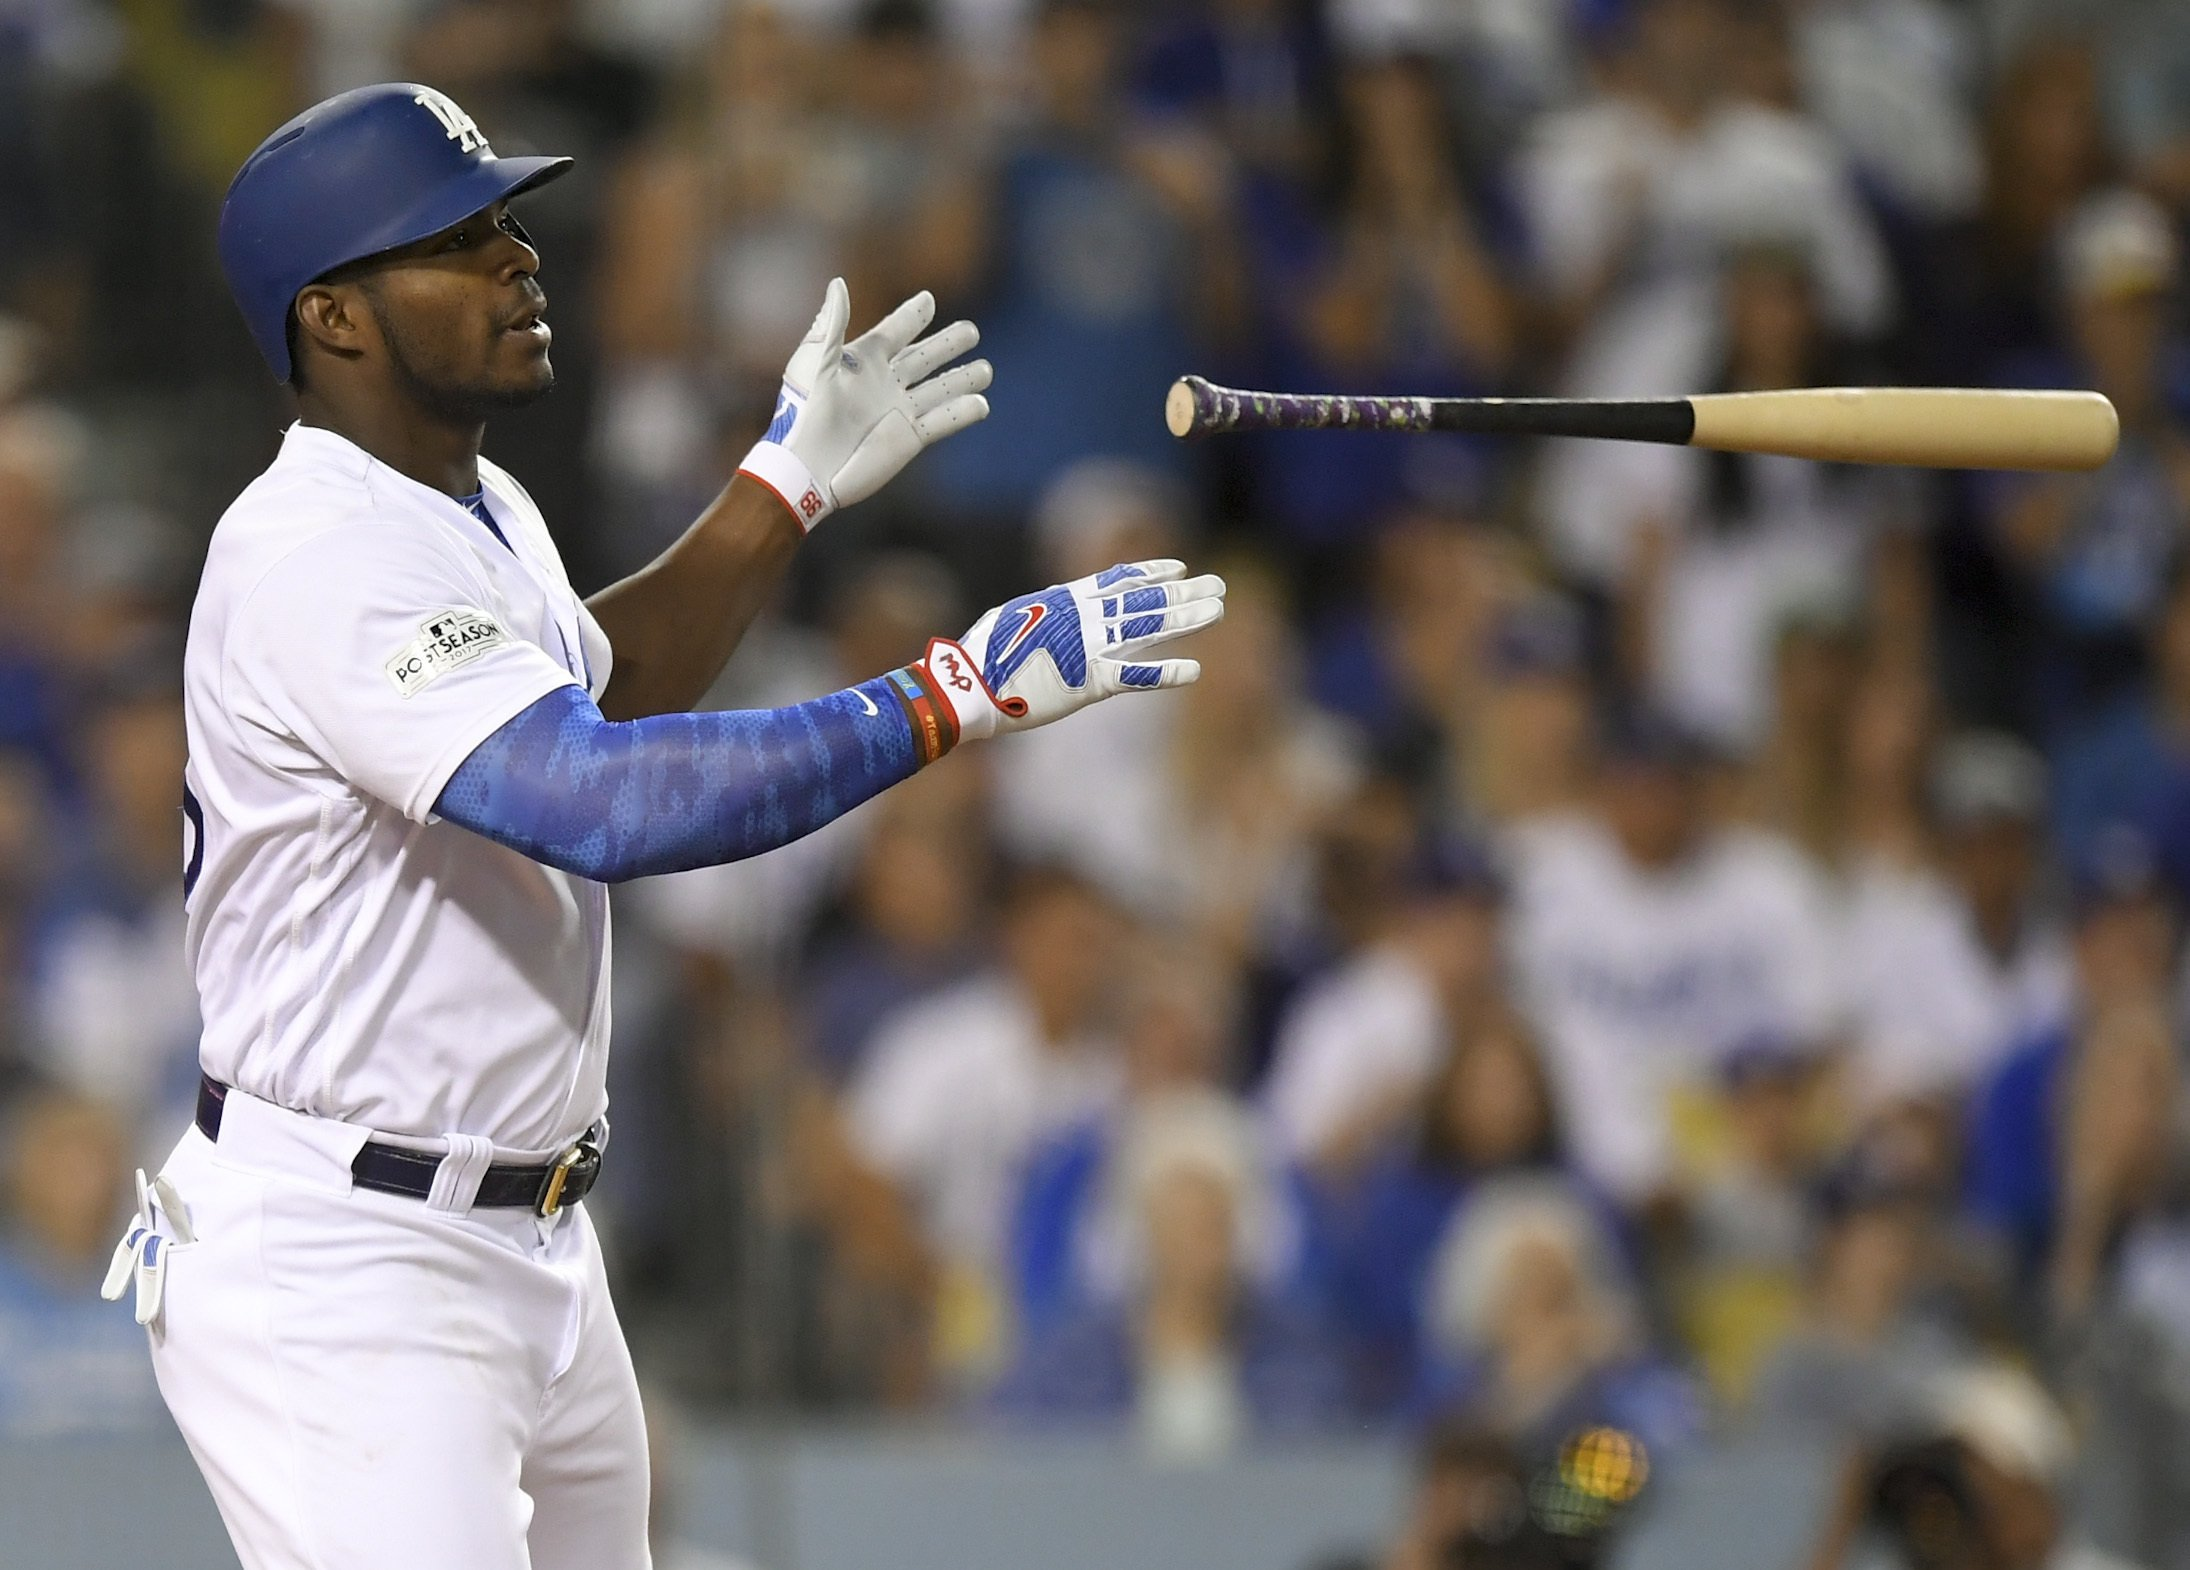 Los Angeles Dodgers  Yasiel Puig celebrates after a single against the  Arizona Diamondbacks during the fourth inning of Game 2 of baseball s  National League ... 770d8c2ad